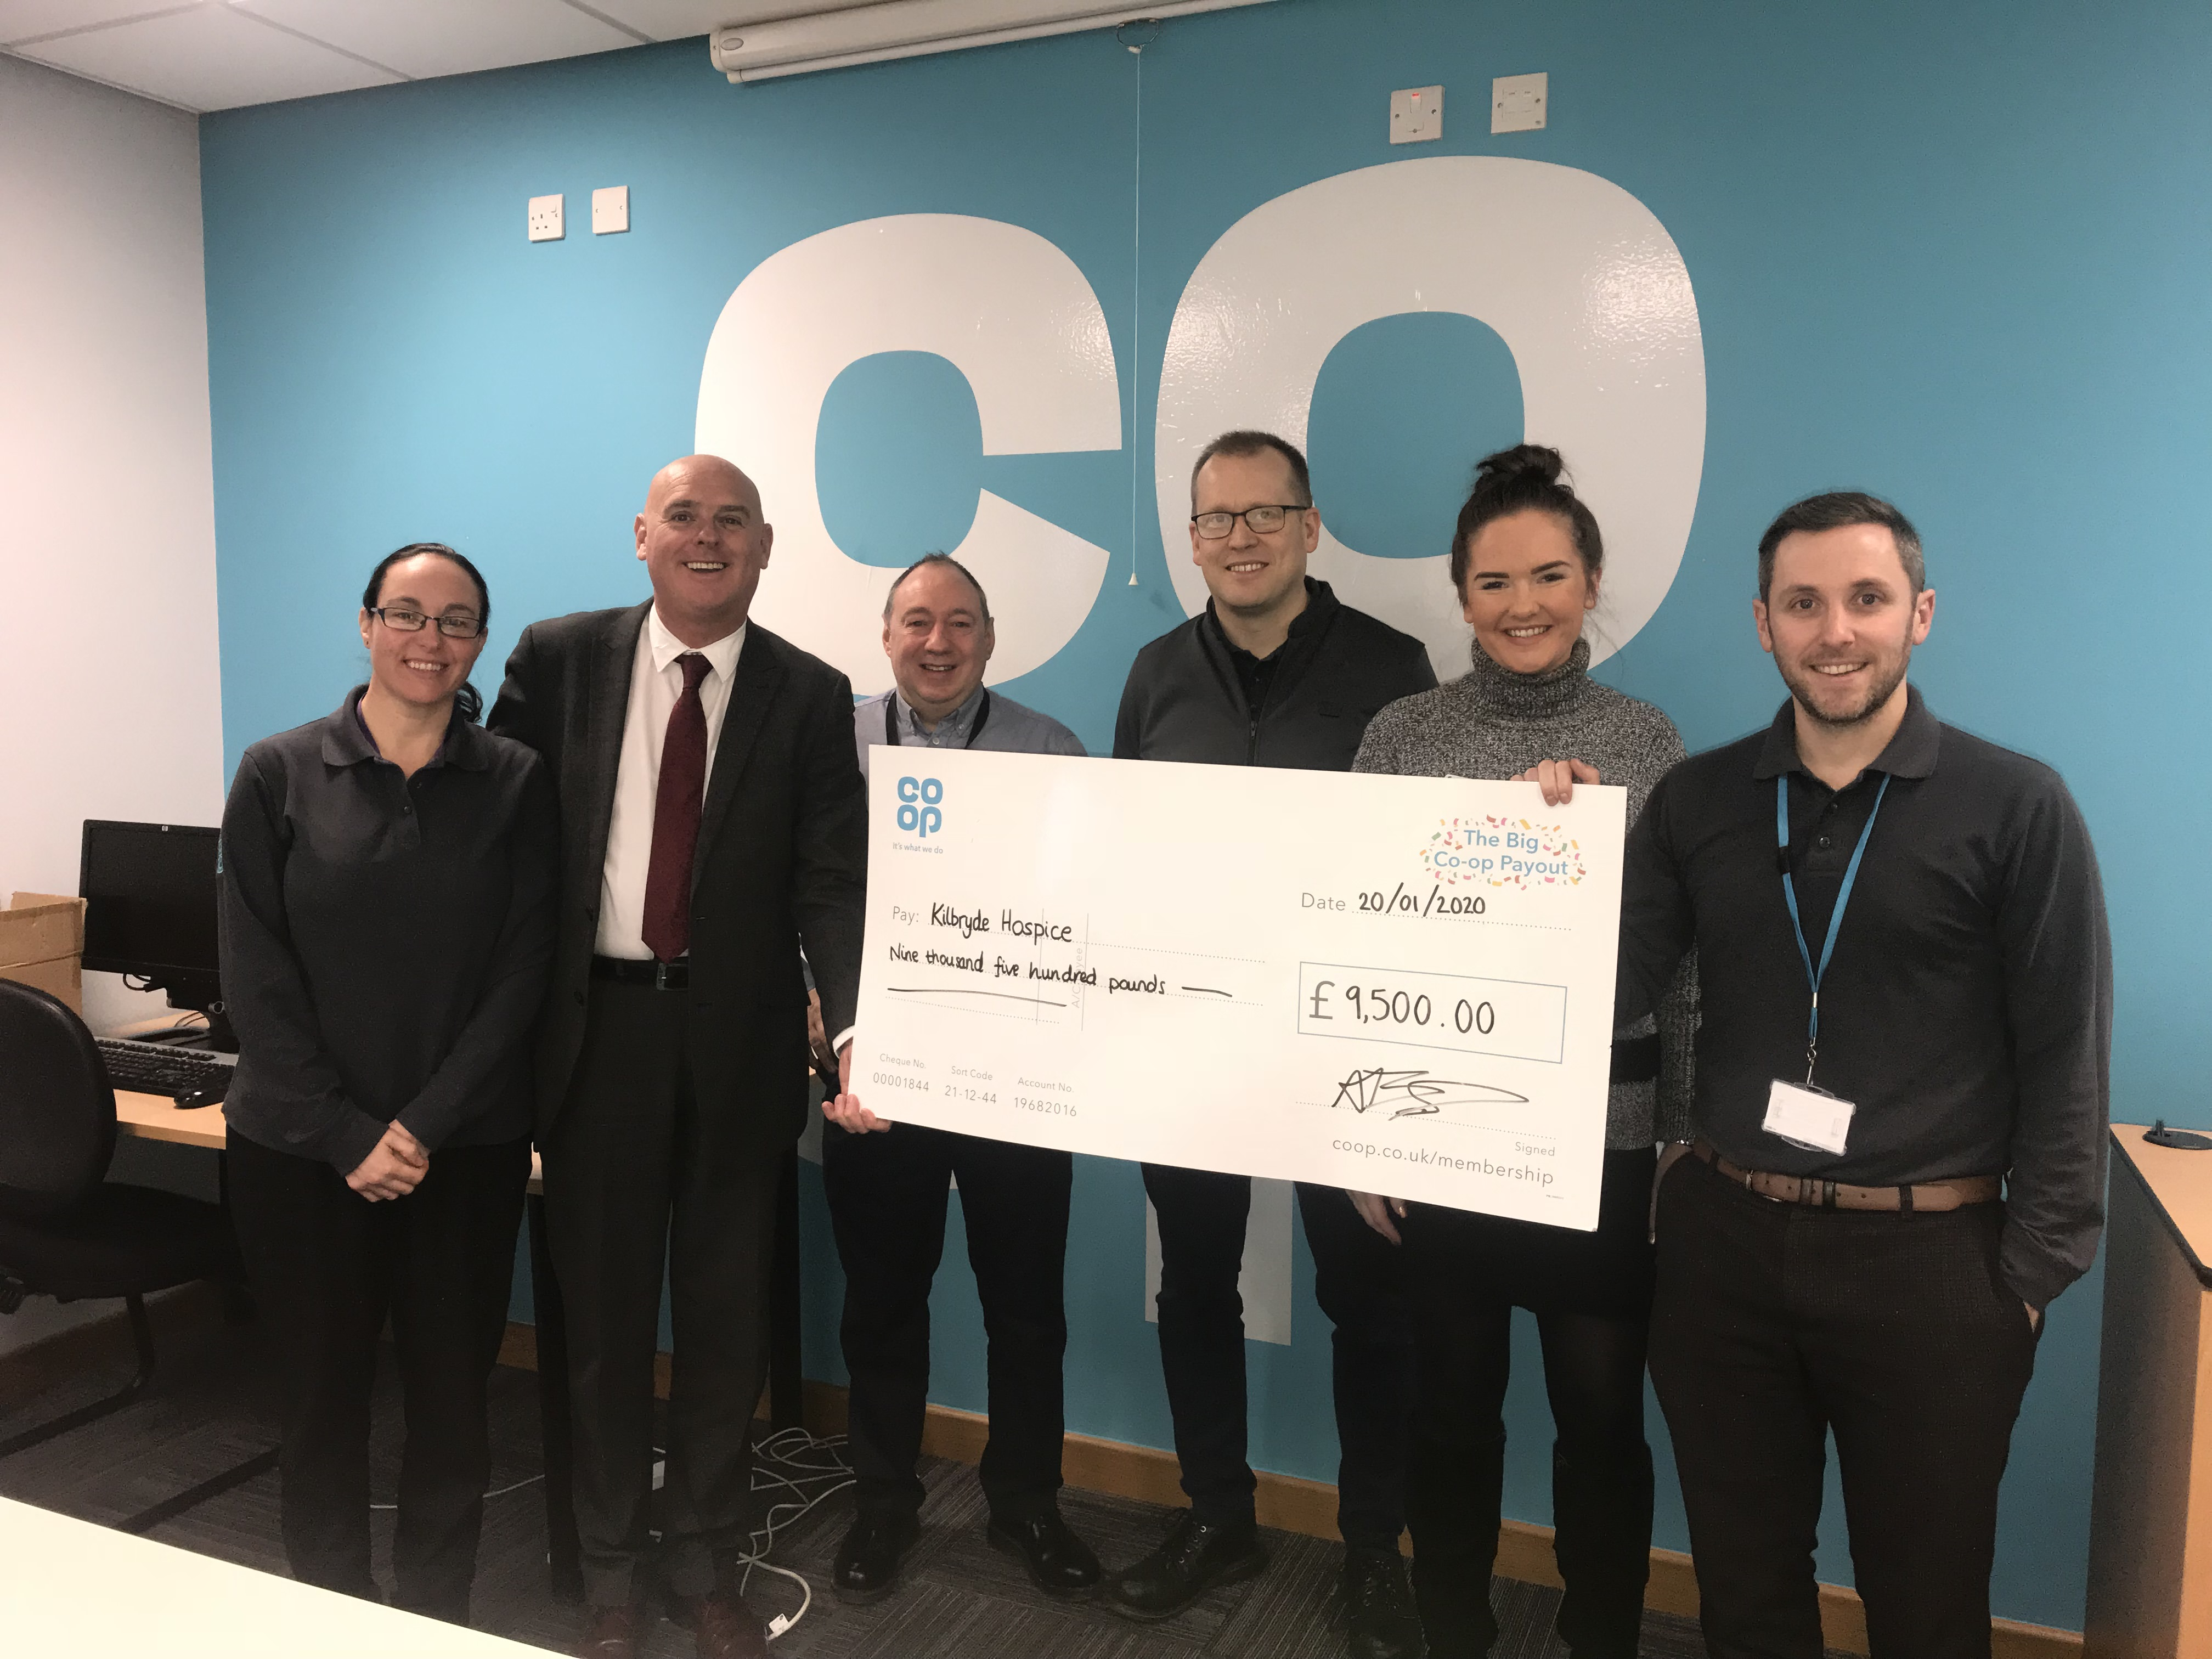 Co-op raise over £9,000 for Kilbryde!